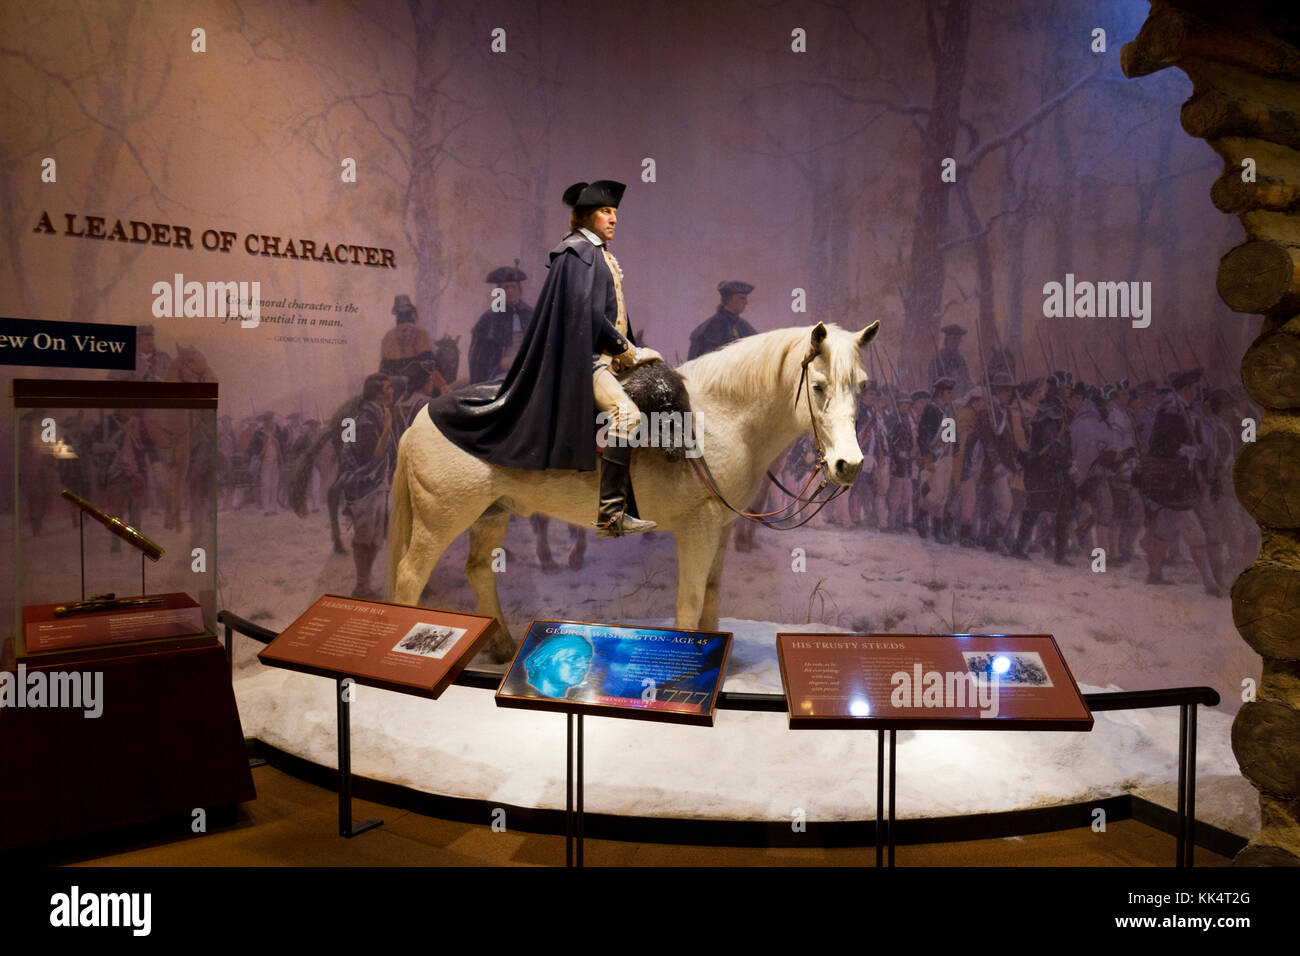 A display showing George Washington (aged 45) on a white horse in the museum on the Mount Vernon estate, Alexandria, - Stock Image